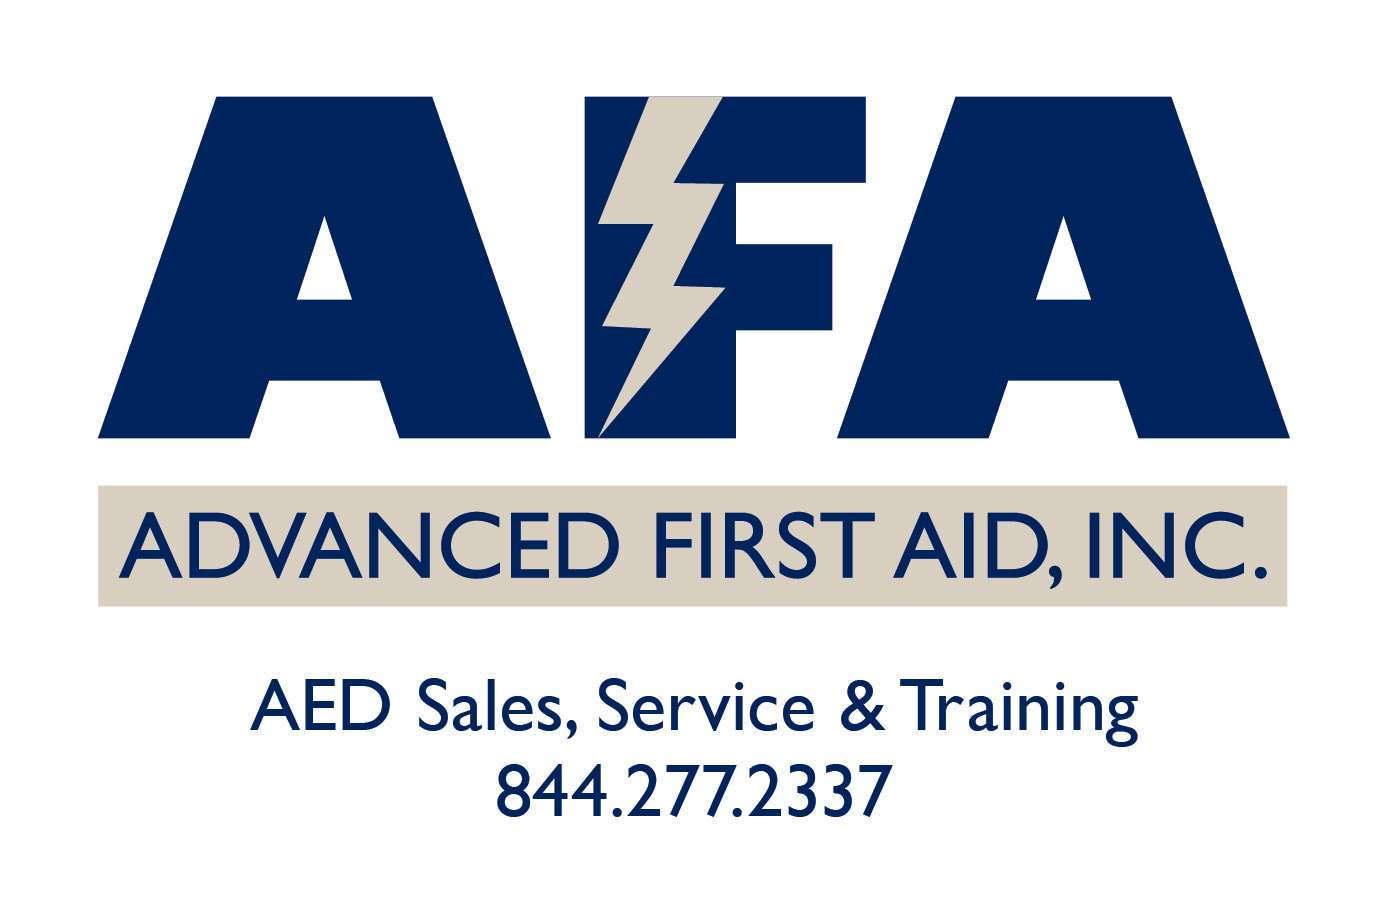 AdvancedFirstAid